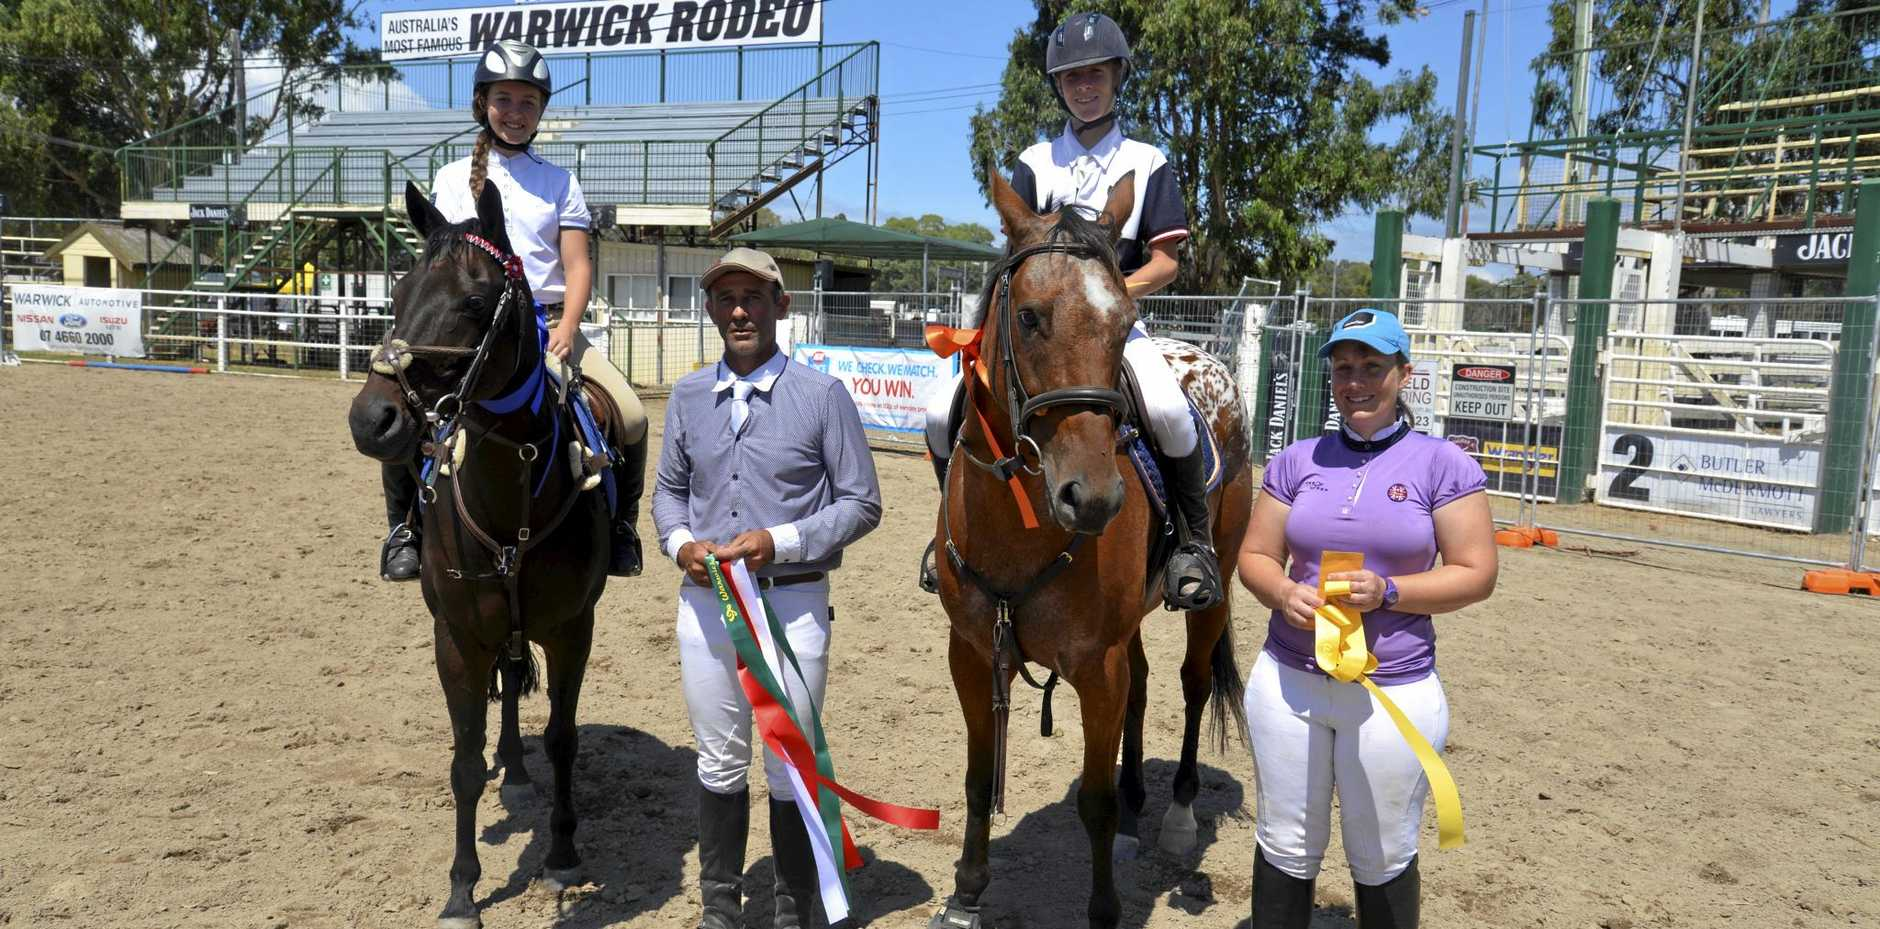 READY TO RIDE: Show-jumping winner Nikki Burraston riding Dakota with Brock Harvey (2nd, 3rd and 5th), William Wood riding Cupcake (4th) and Kate Hurley (6th) at the 2016 Warwick Show.